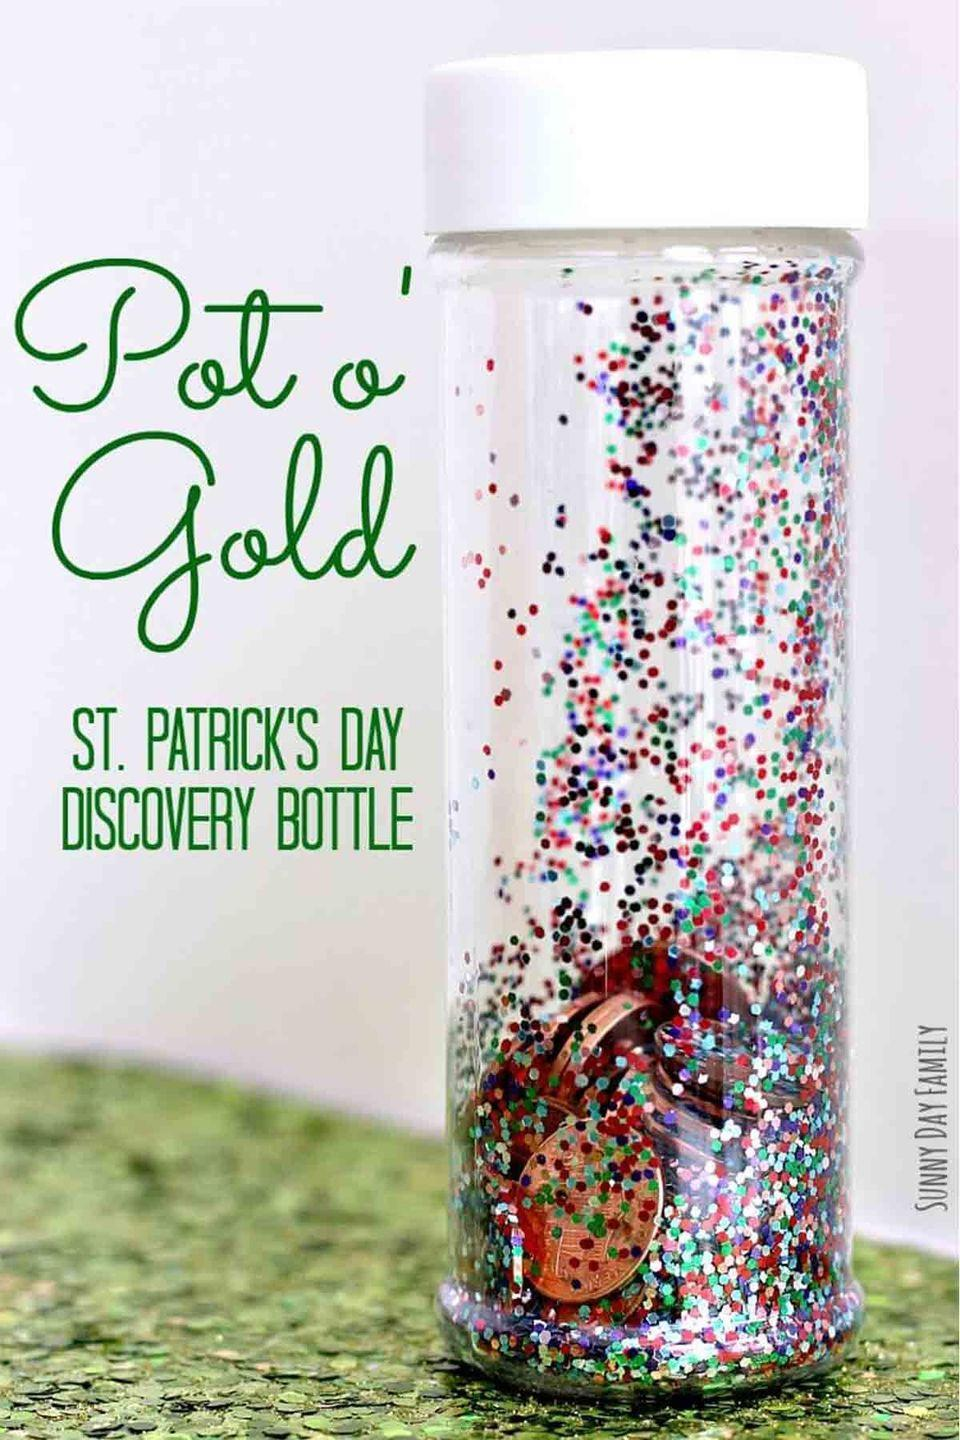 """<p>Turn a bottle of glitter into a sensory <a href=""""https://www.womansday.com/life/a4698/5-unique-ways-to-celebrate-st-patricks-day-104555/"""" rel=""""nofollow noopener"""" target=""""_blank"""" data-ylk=""""slk:activity for your younger children"""" class=""""link rapid-noclick-resp"""">activity for your younger children</a>.</p><p><em>Get the tutorial at <a href=""""http://www.sunnydayfamily.com/2016/02/pot-of-gold-bottle.html"""" rel=""""nofollow noopener"""" target=""""_blank"""" data-ylk=""""slk:Sunny Day Family"""" class=""""link rapid-noclick-resp"""">Sunny Day Family</a>.</em> </p>"""